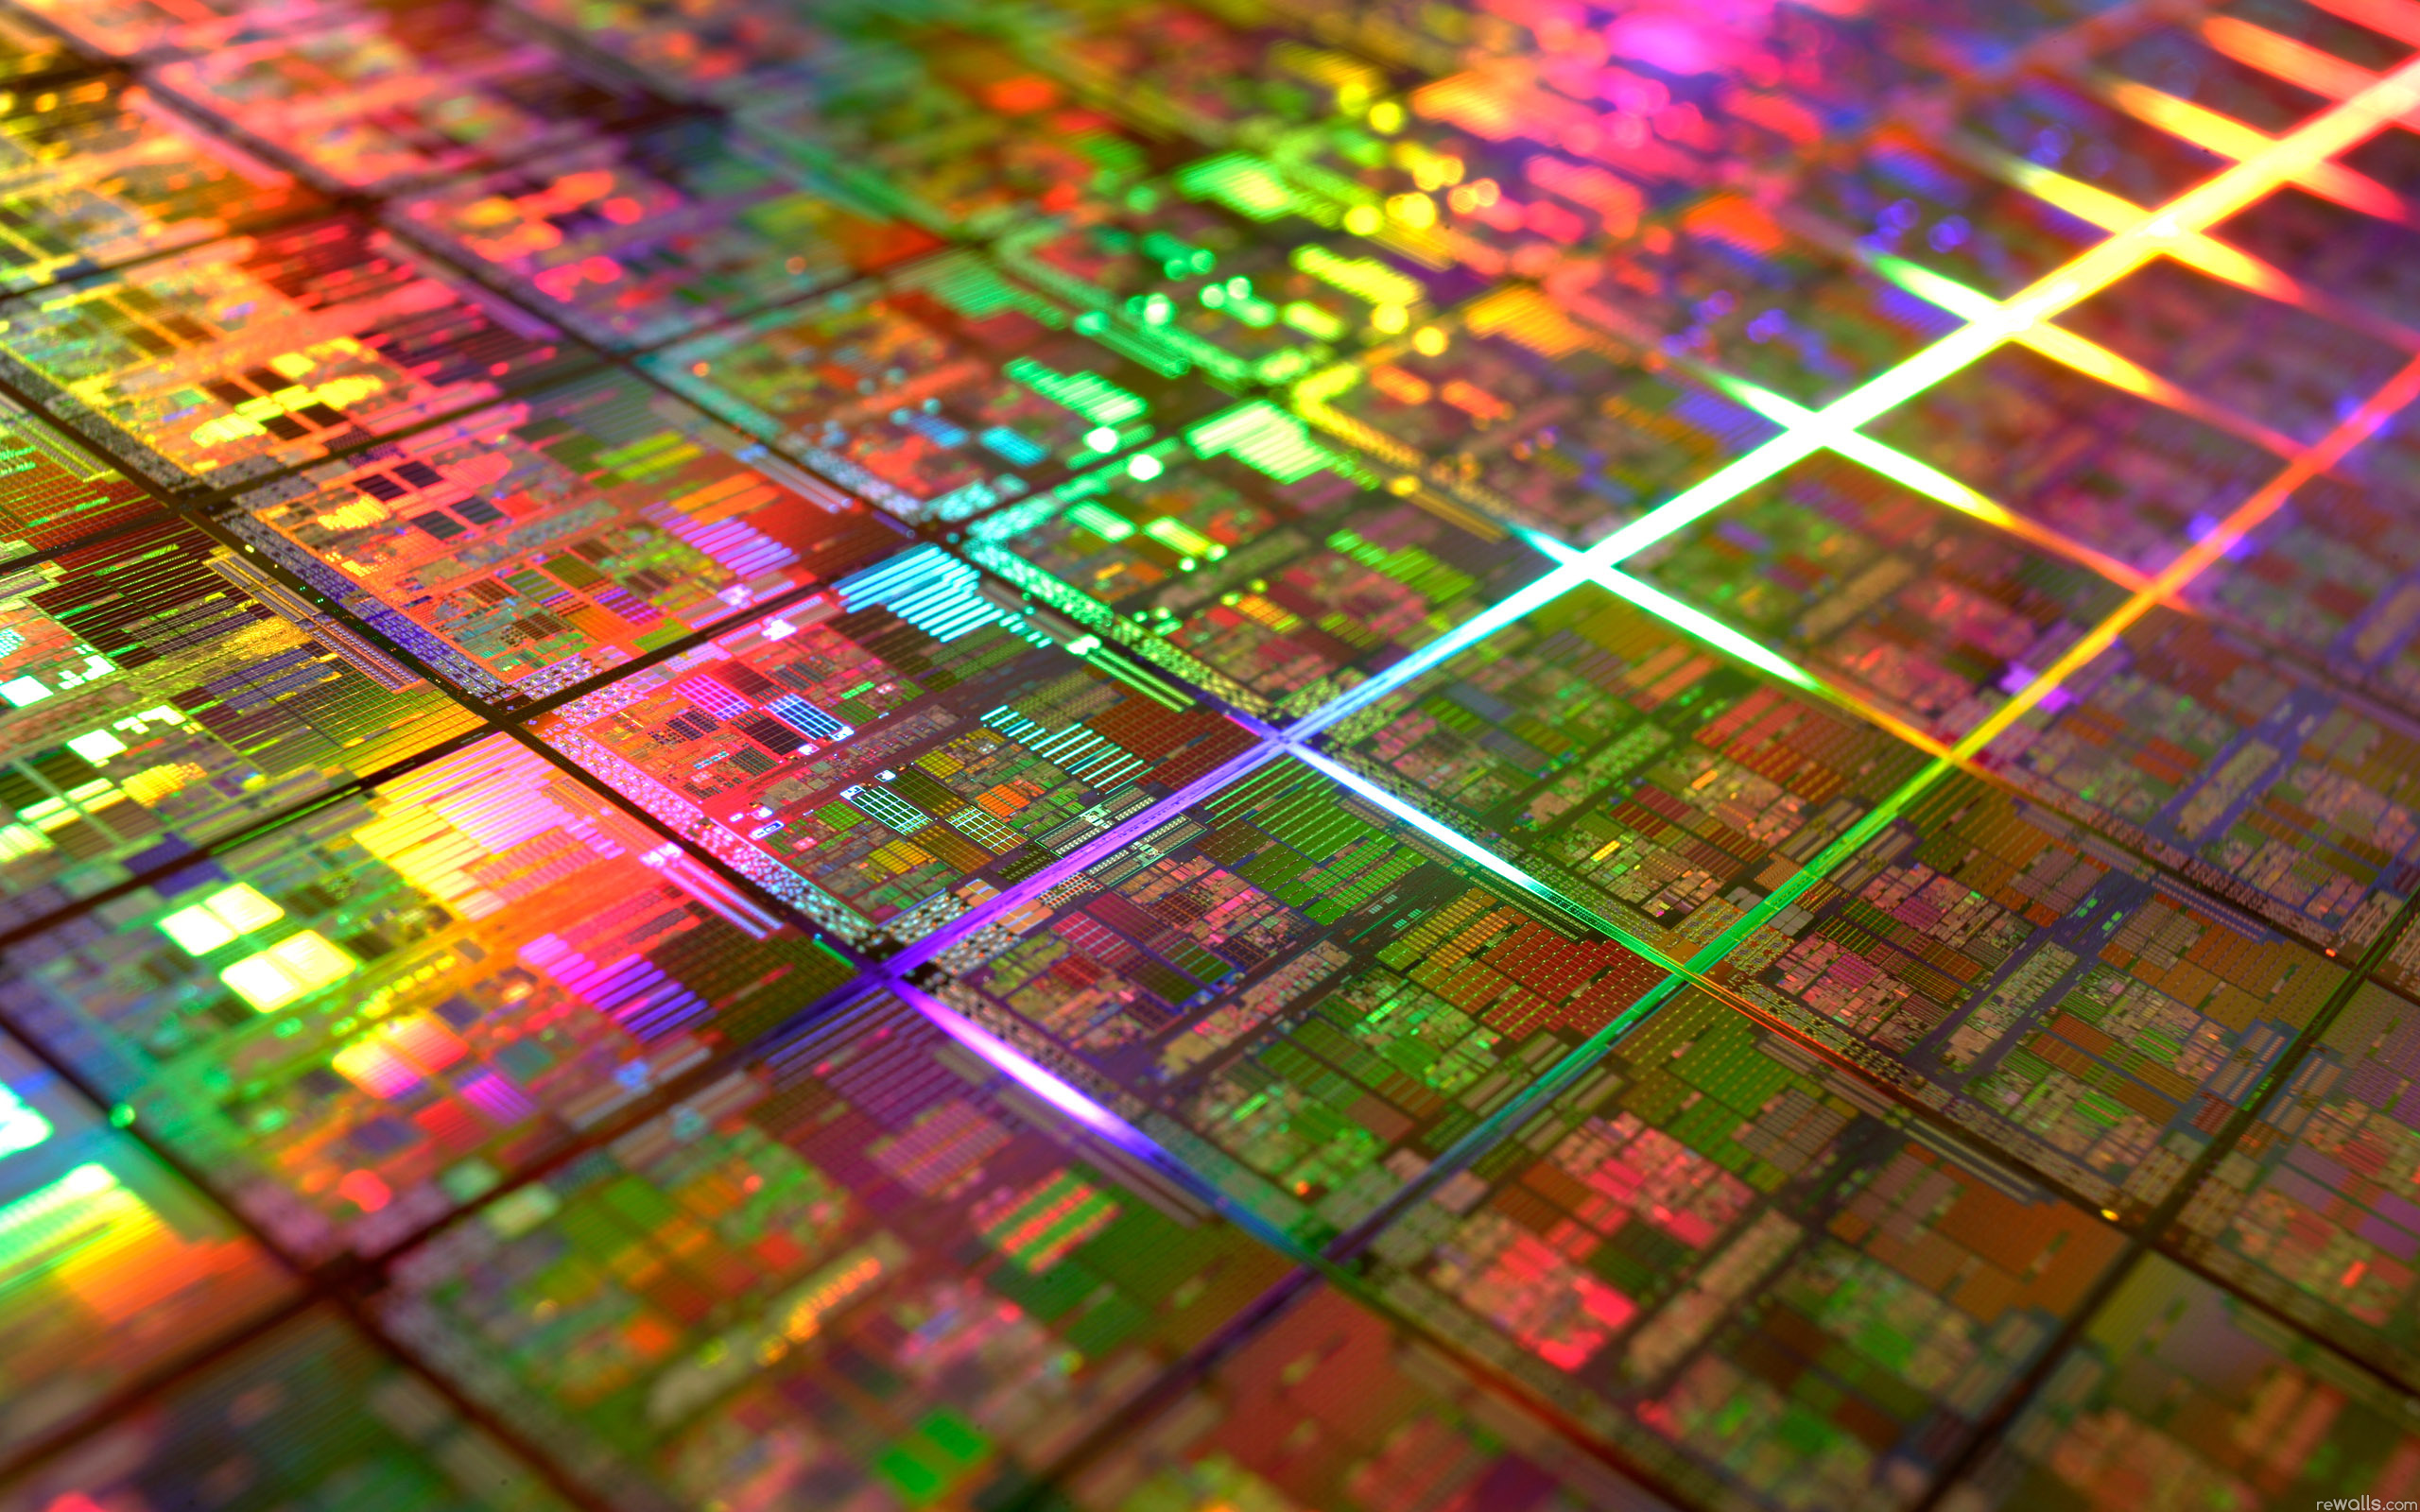 Cpu microchips